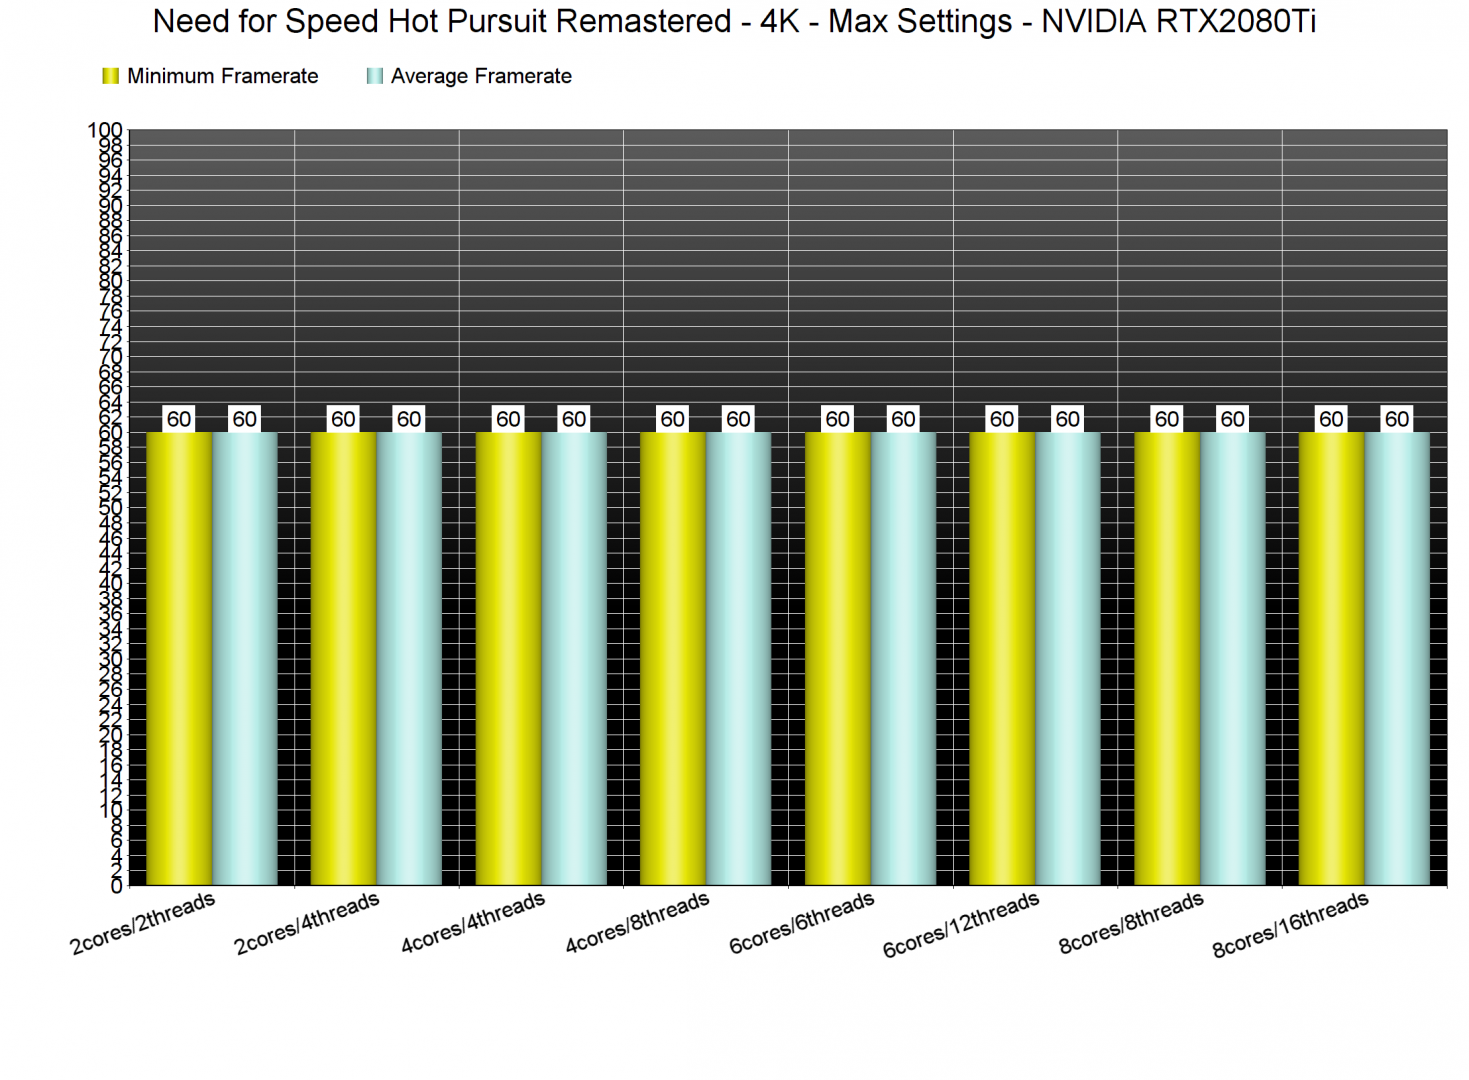 Need for Speed Hot Pursuit Remastered CPU benchmarks